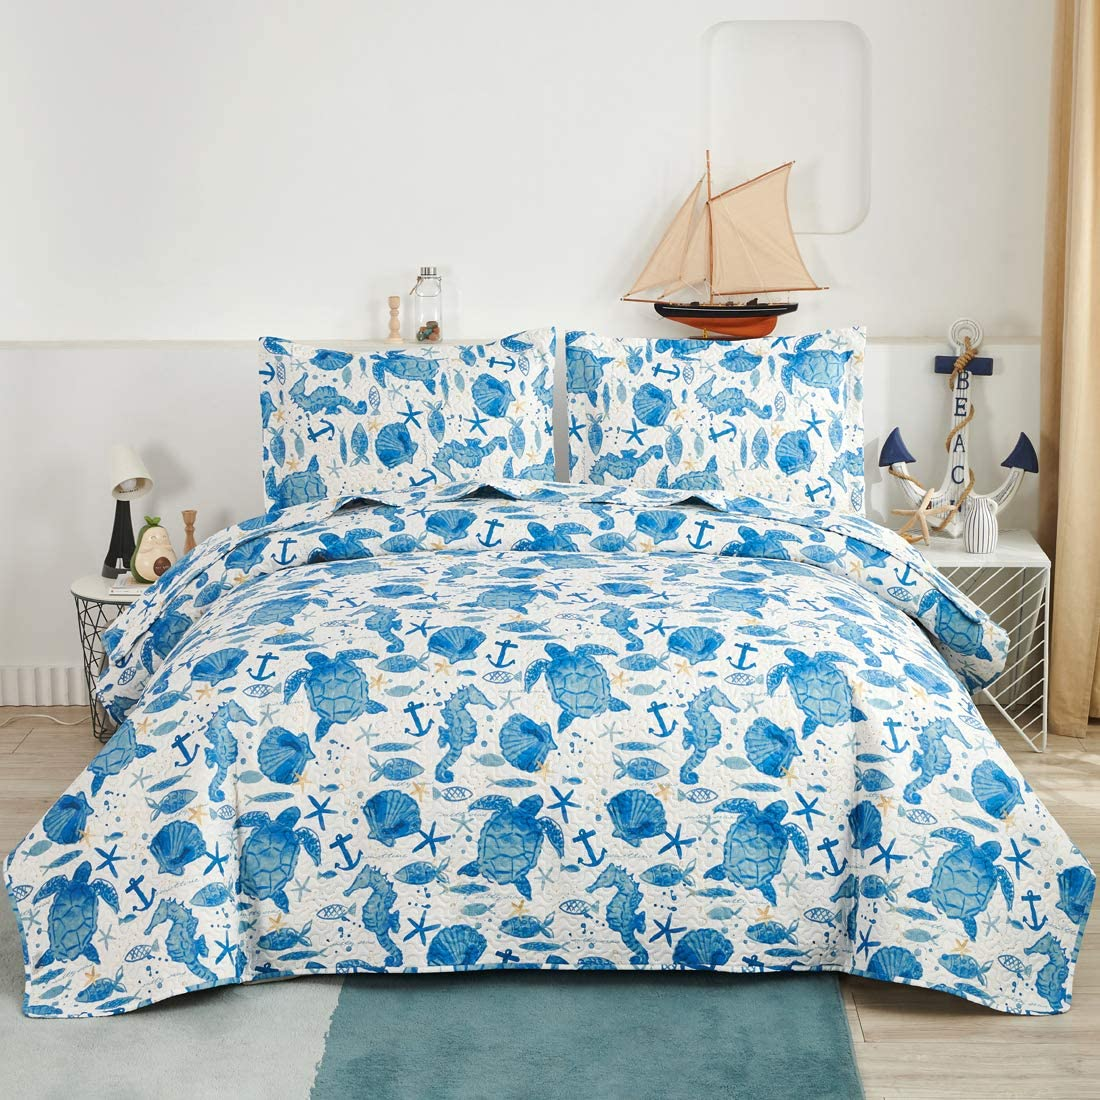 Oliven Marine Life Bedding Turtle Quilt Queen/Full Size Coastal Bedspread Beach Sea Turtle Seahorse Shell Starfish Anchor Ocean Coverlet Daybed Cover Beach Theme Bedroom Decor